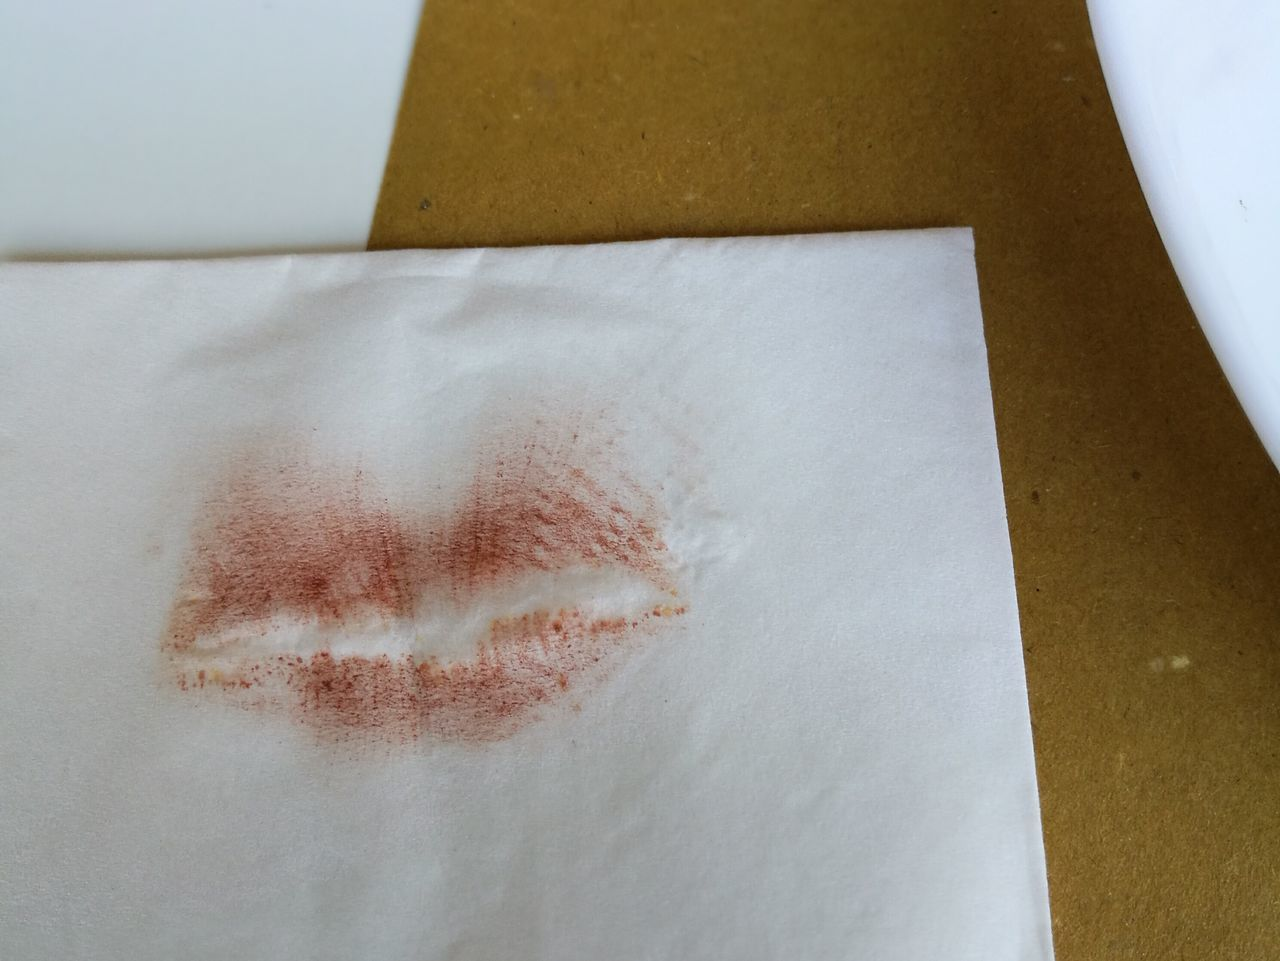 Kiss lipstick paper towel indoor Close-up Fragility Lonly Girl Bar Launch Time Love Thing